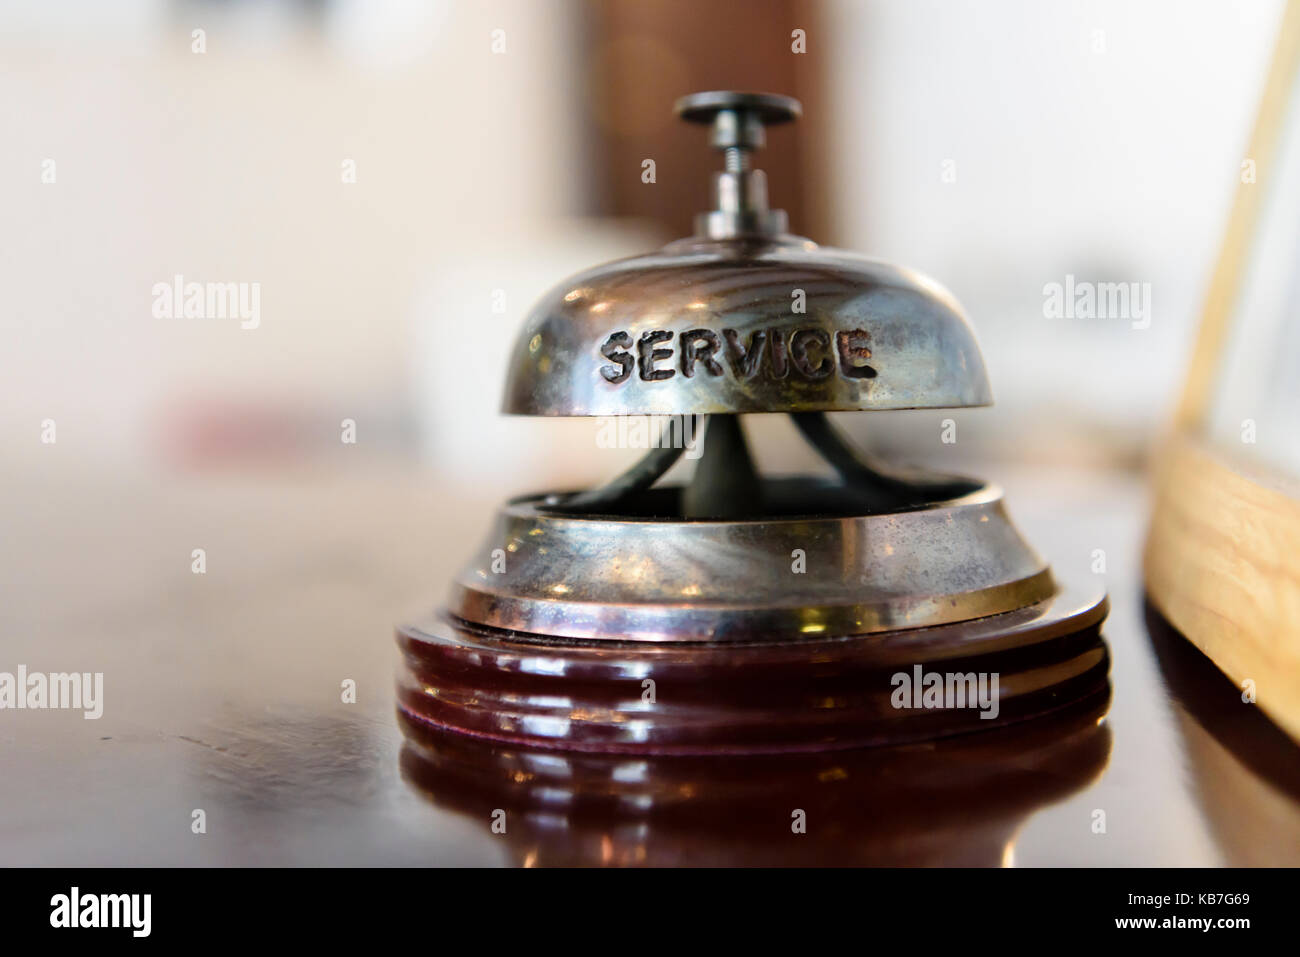 Service bell on the reception desk of a hotel. - Stock Image